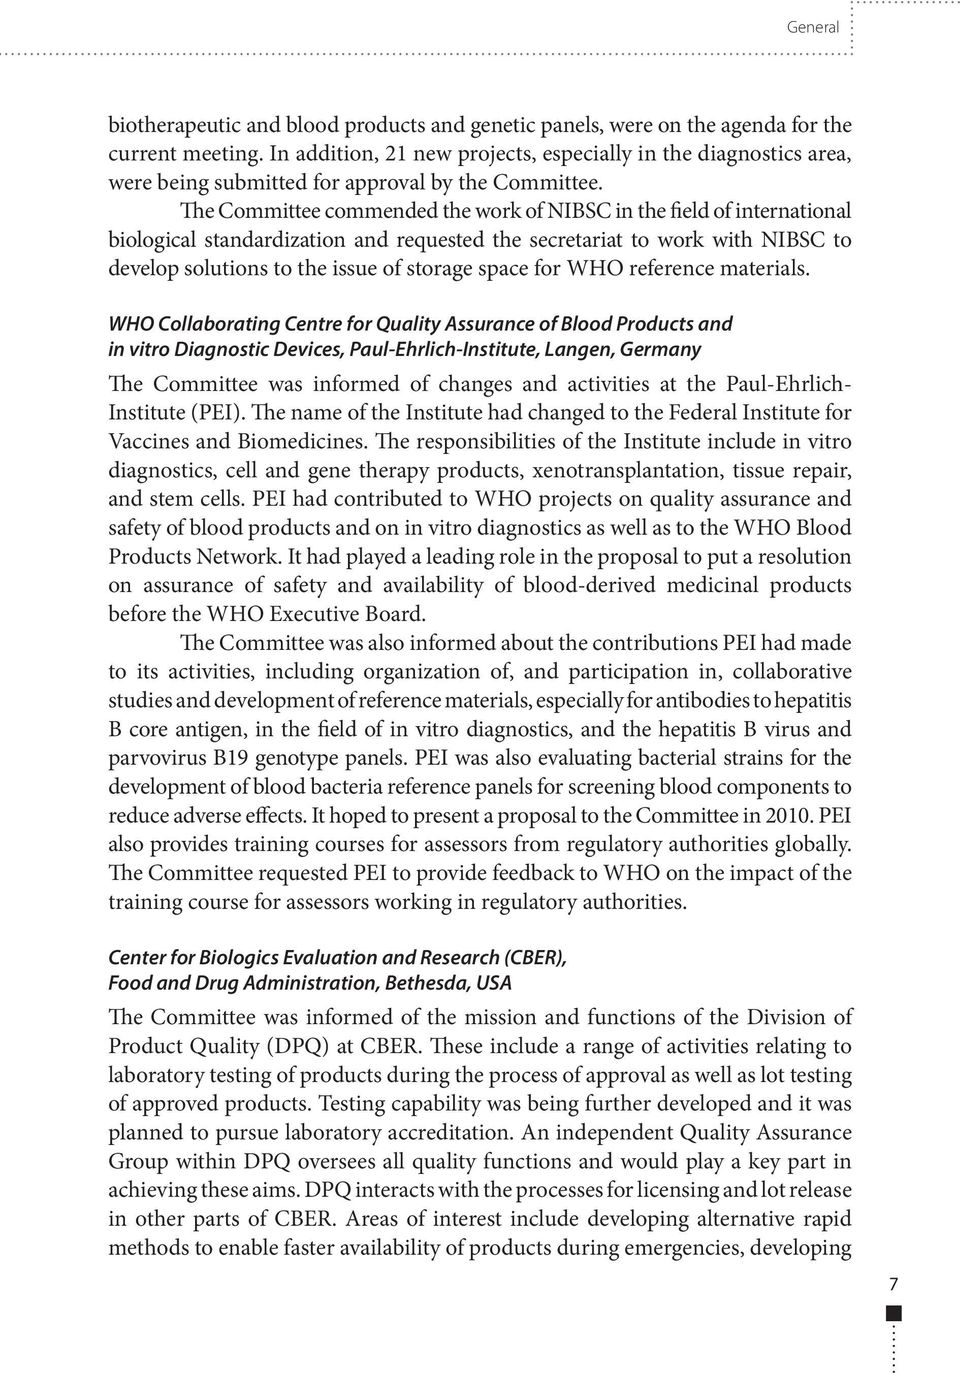 The Committee commended the work of NIBSC in the field of international biological standardization and requested the secretariat to work with NIBSC to develop solutions to the issue of storage space